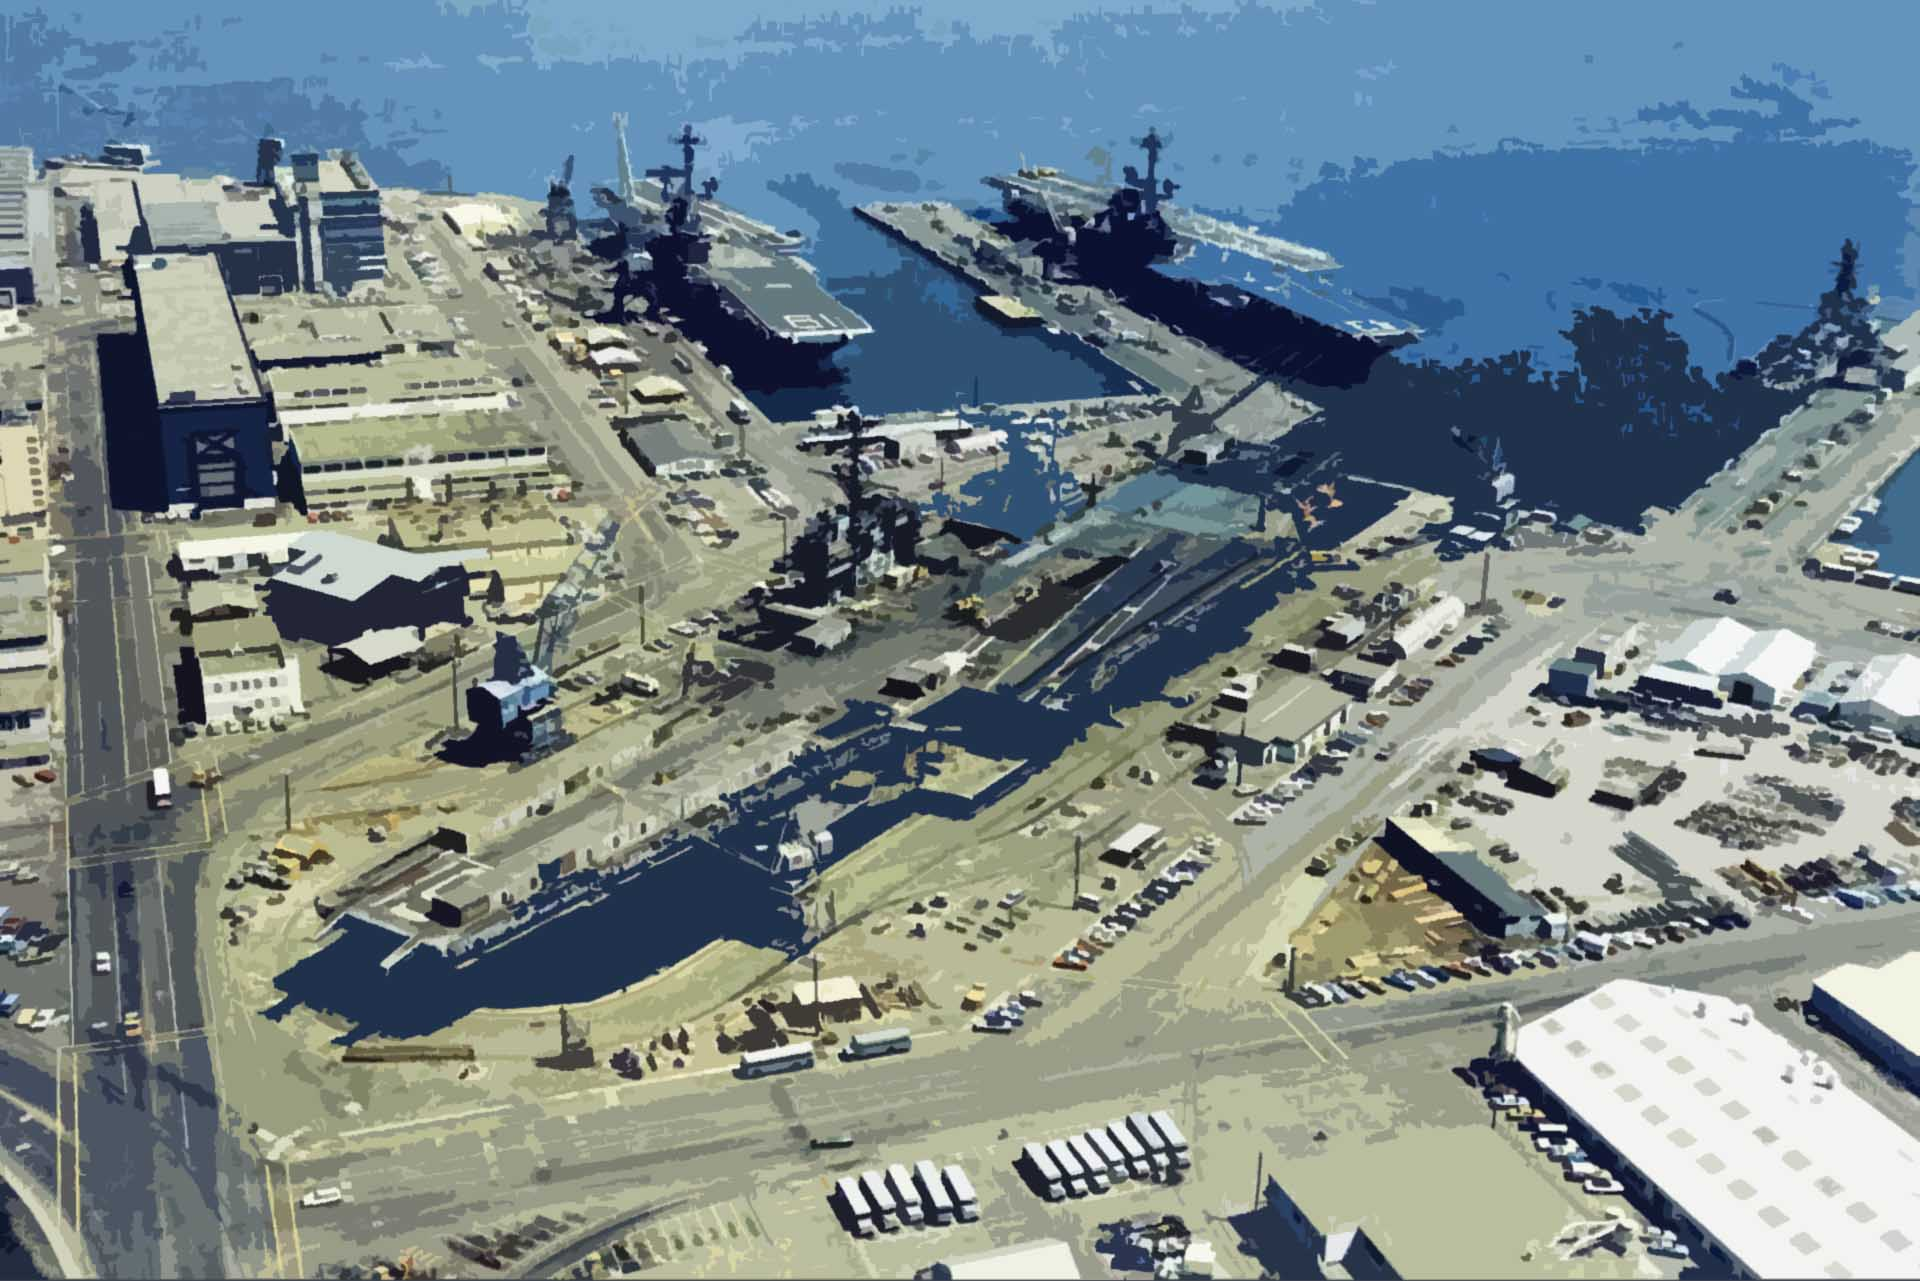 Hunters Point Shipyard Contamination, Cleanup and Development - NBC